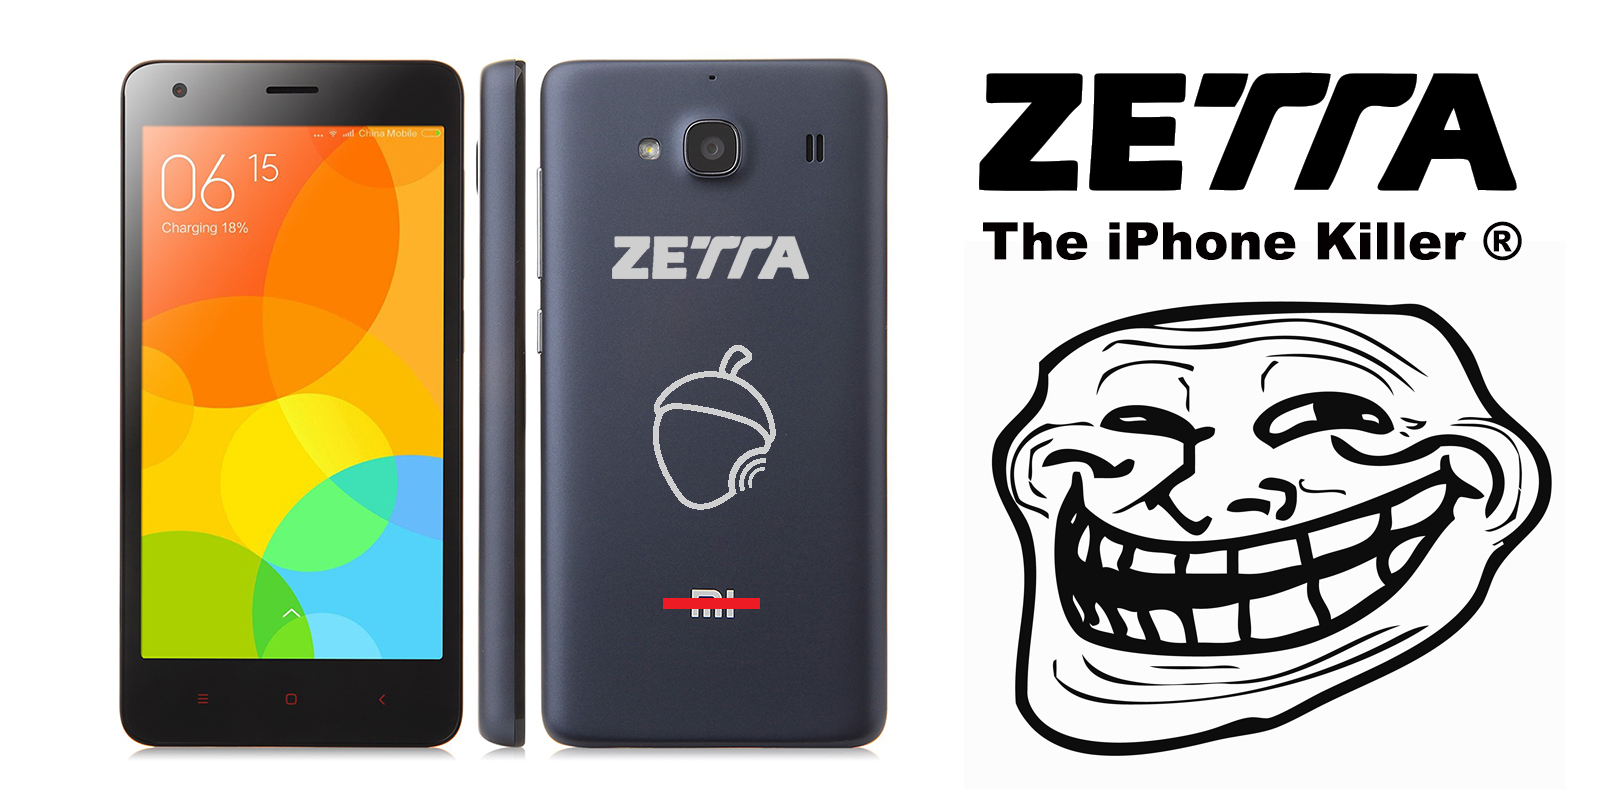 Spanish brand Zetta sells remade Xiaomi phones as its own 'iPhone killer'